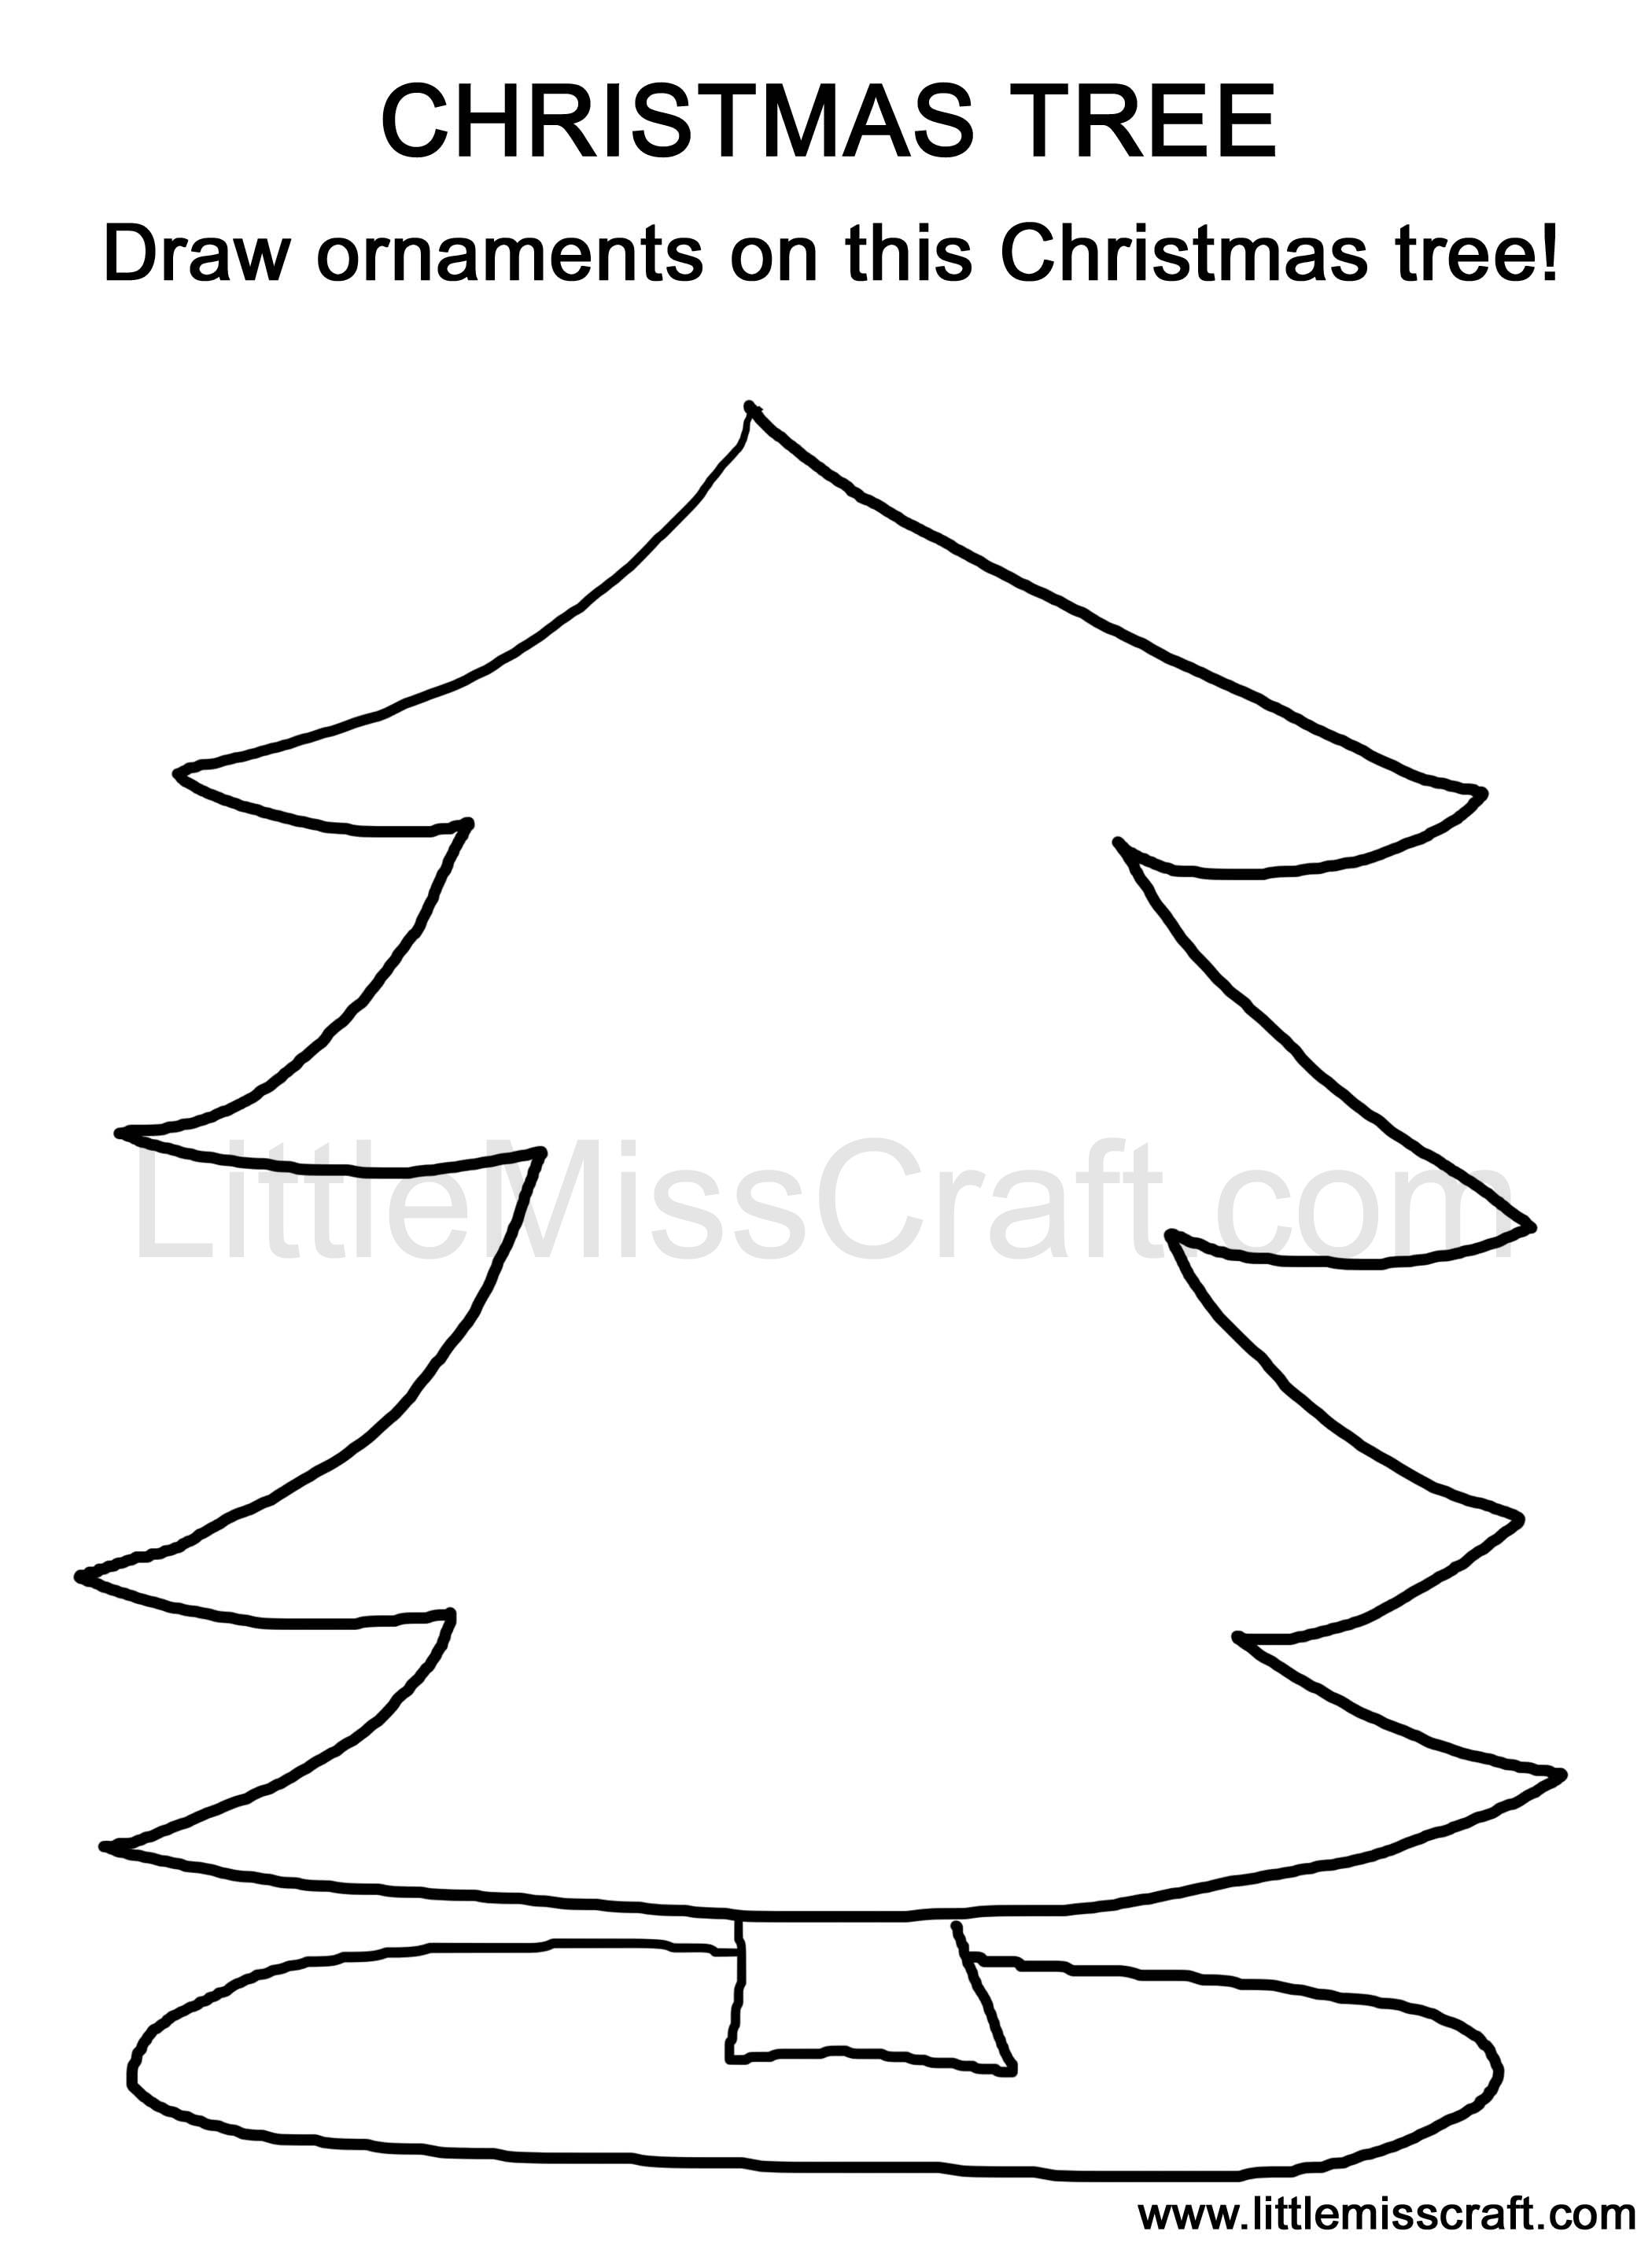 coloring page doodle printable Christmas tree draw ornaments